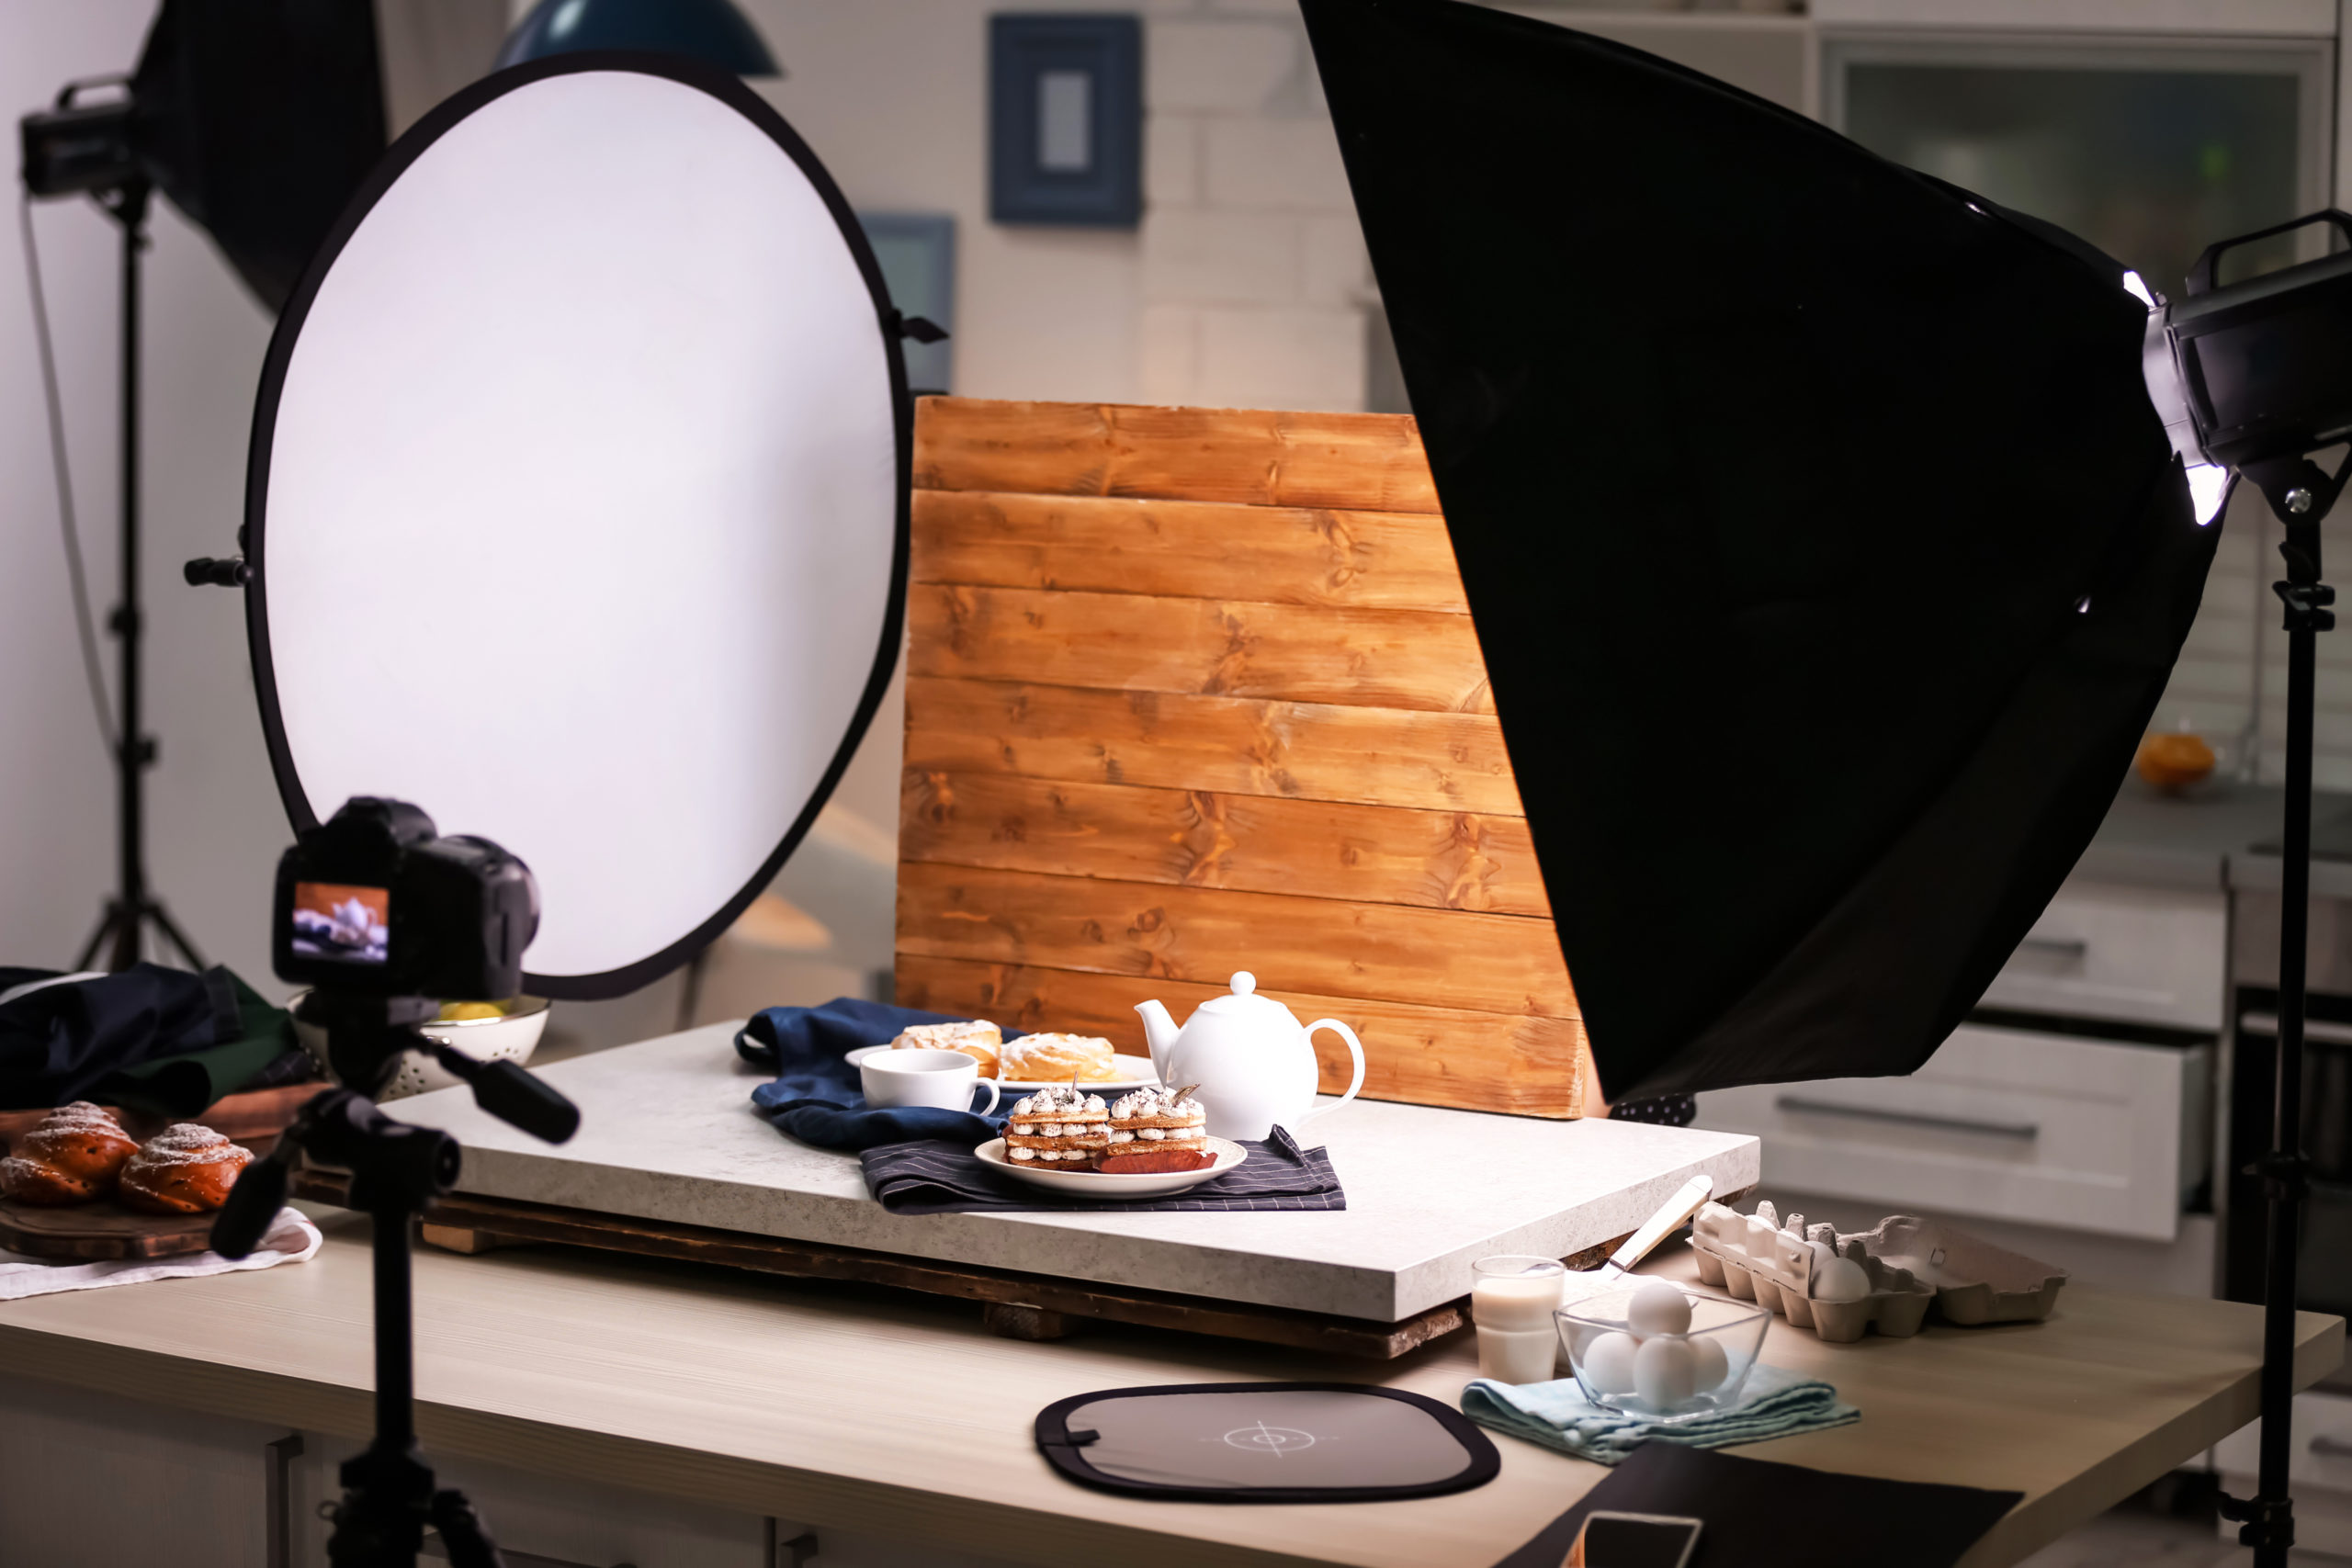 How To Take Appealing Pictures Of Food